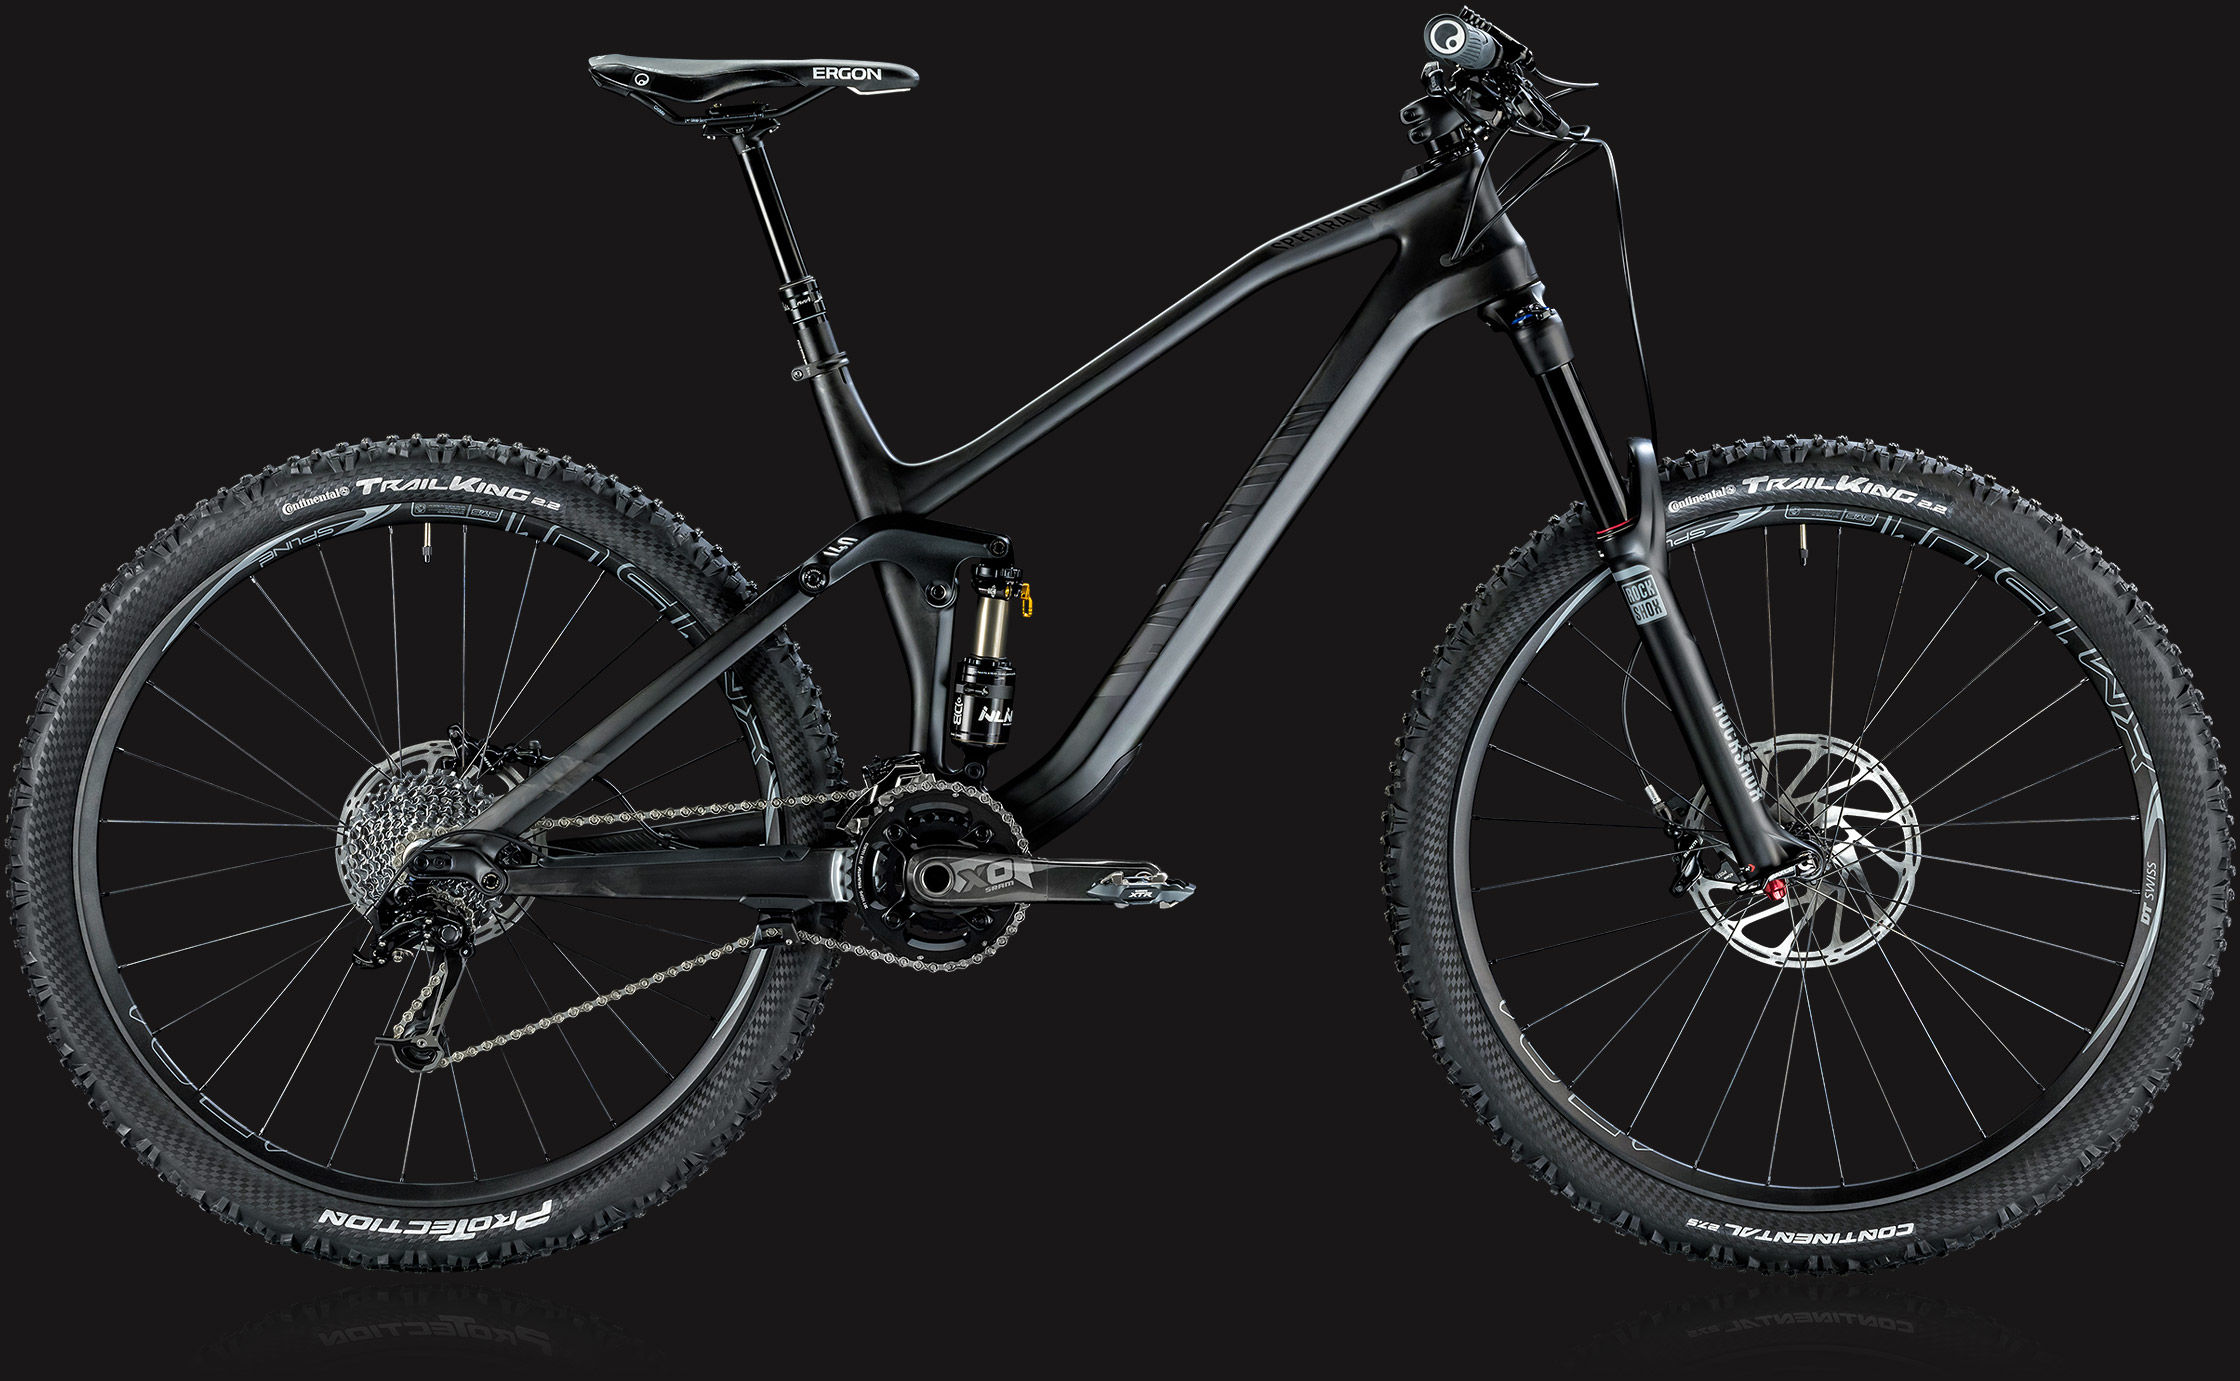 Canyon Spectral CF 9 0 2015 review - The Bike List